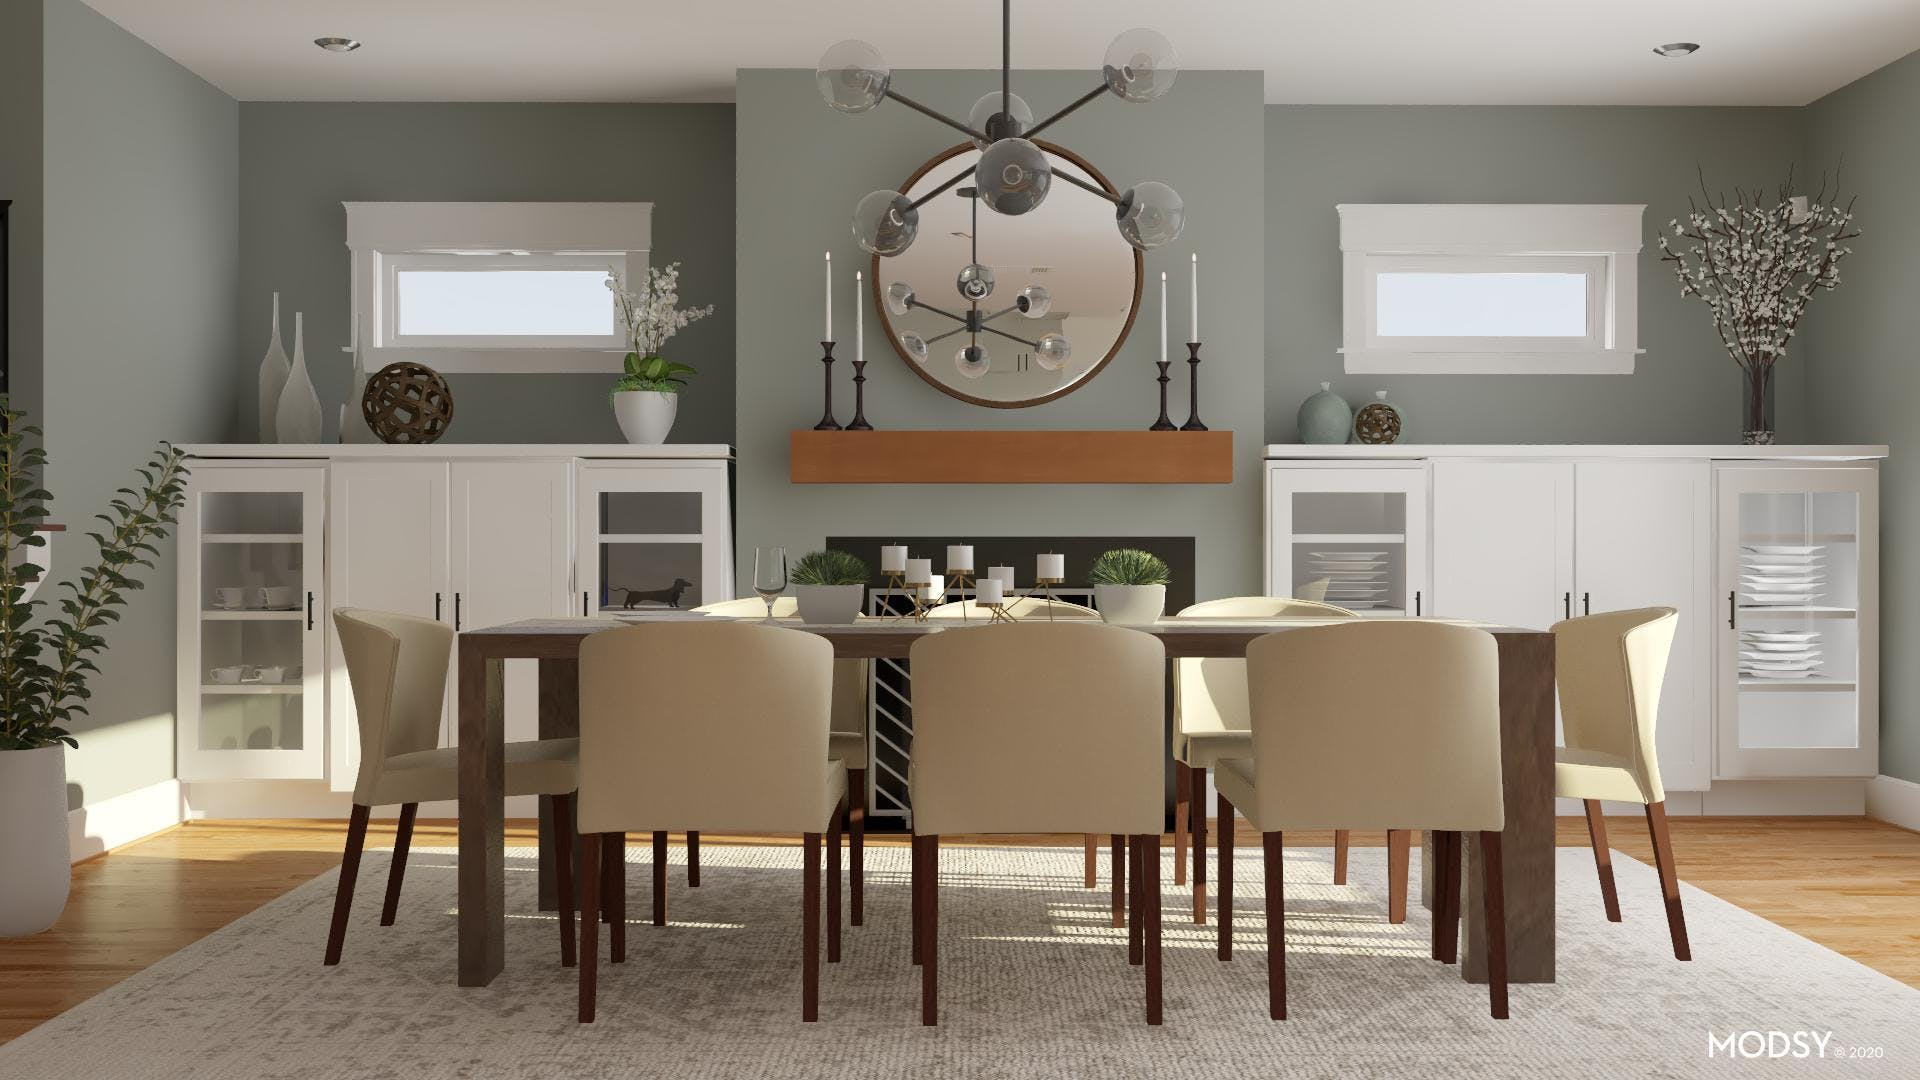 Contemporary + Neutrals For A Formal Dining